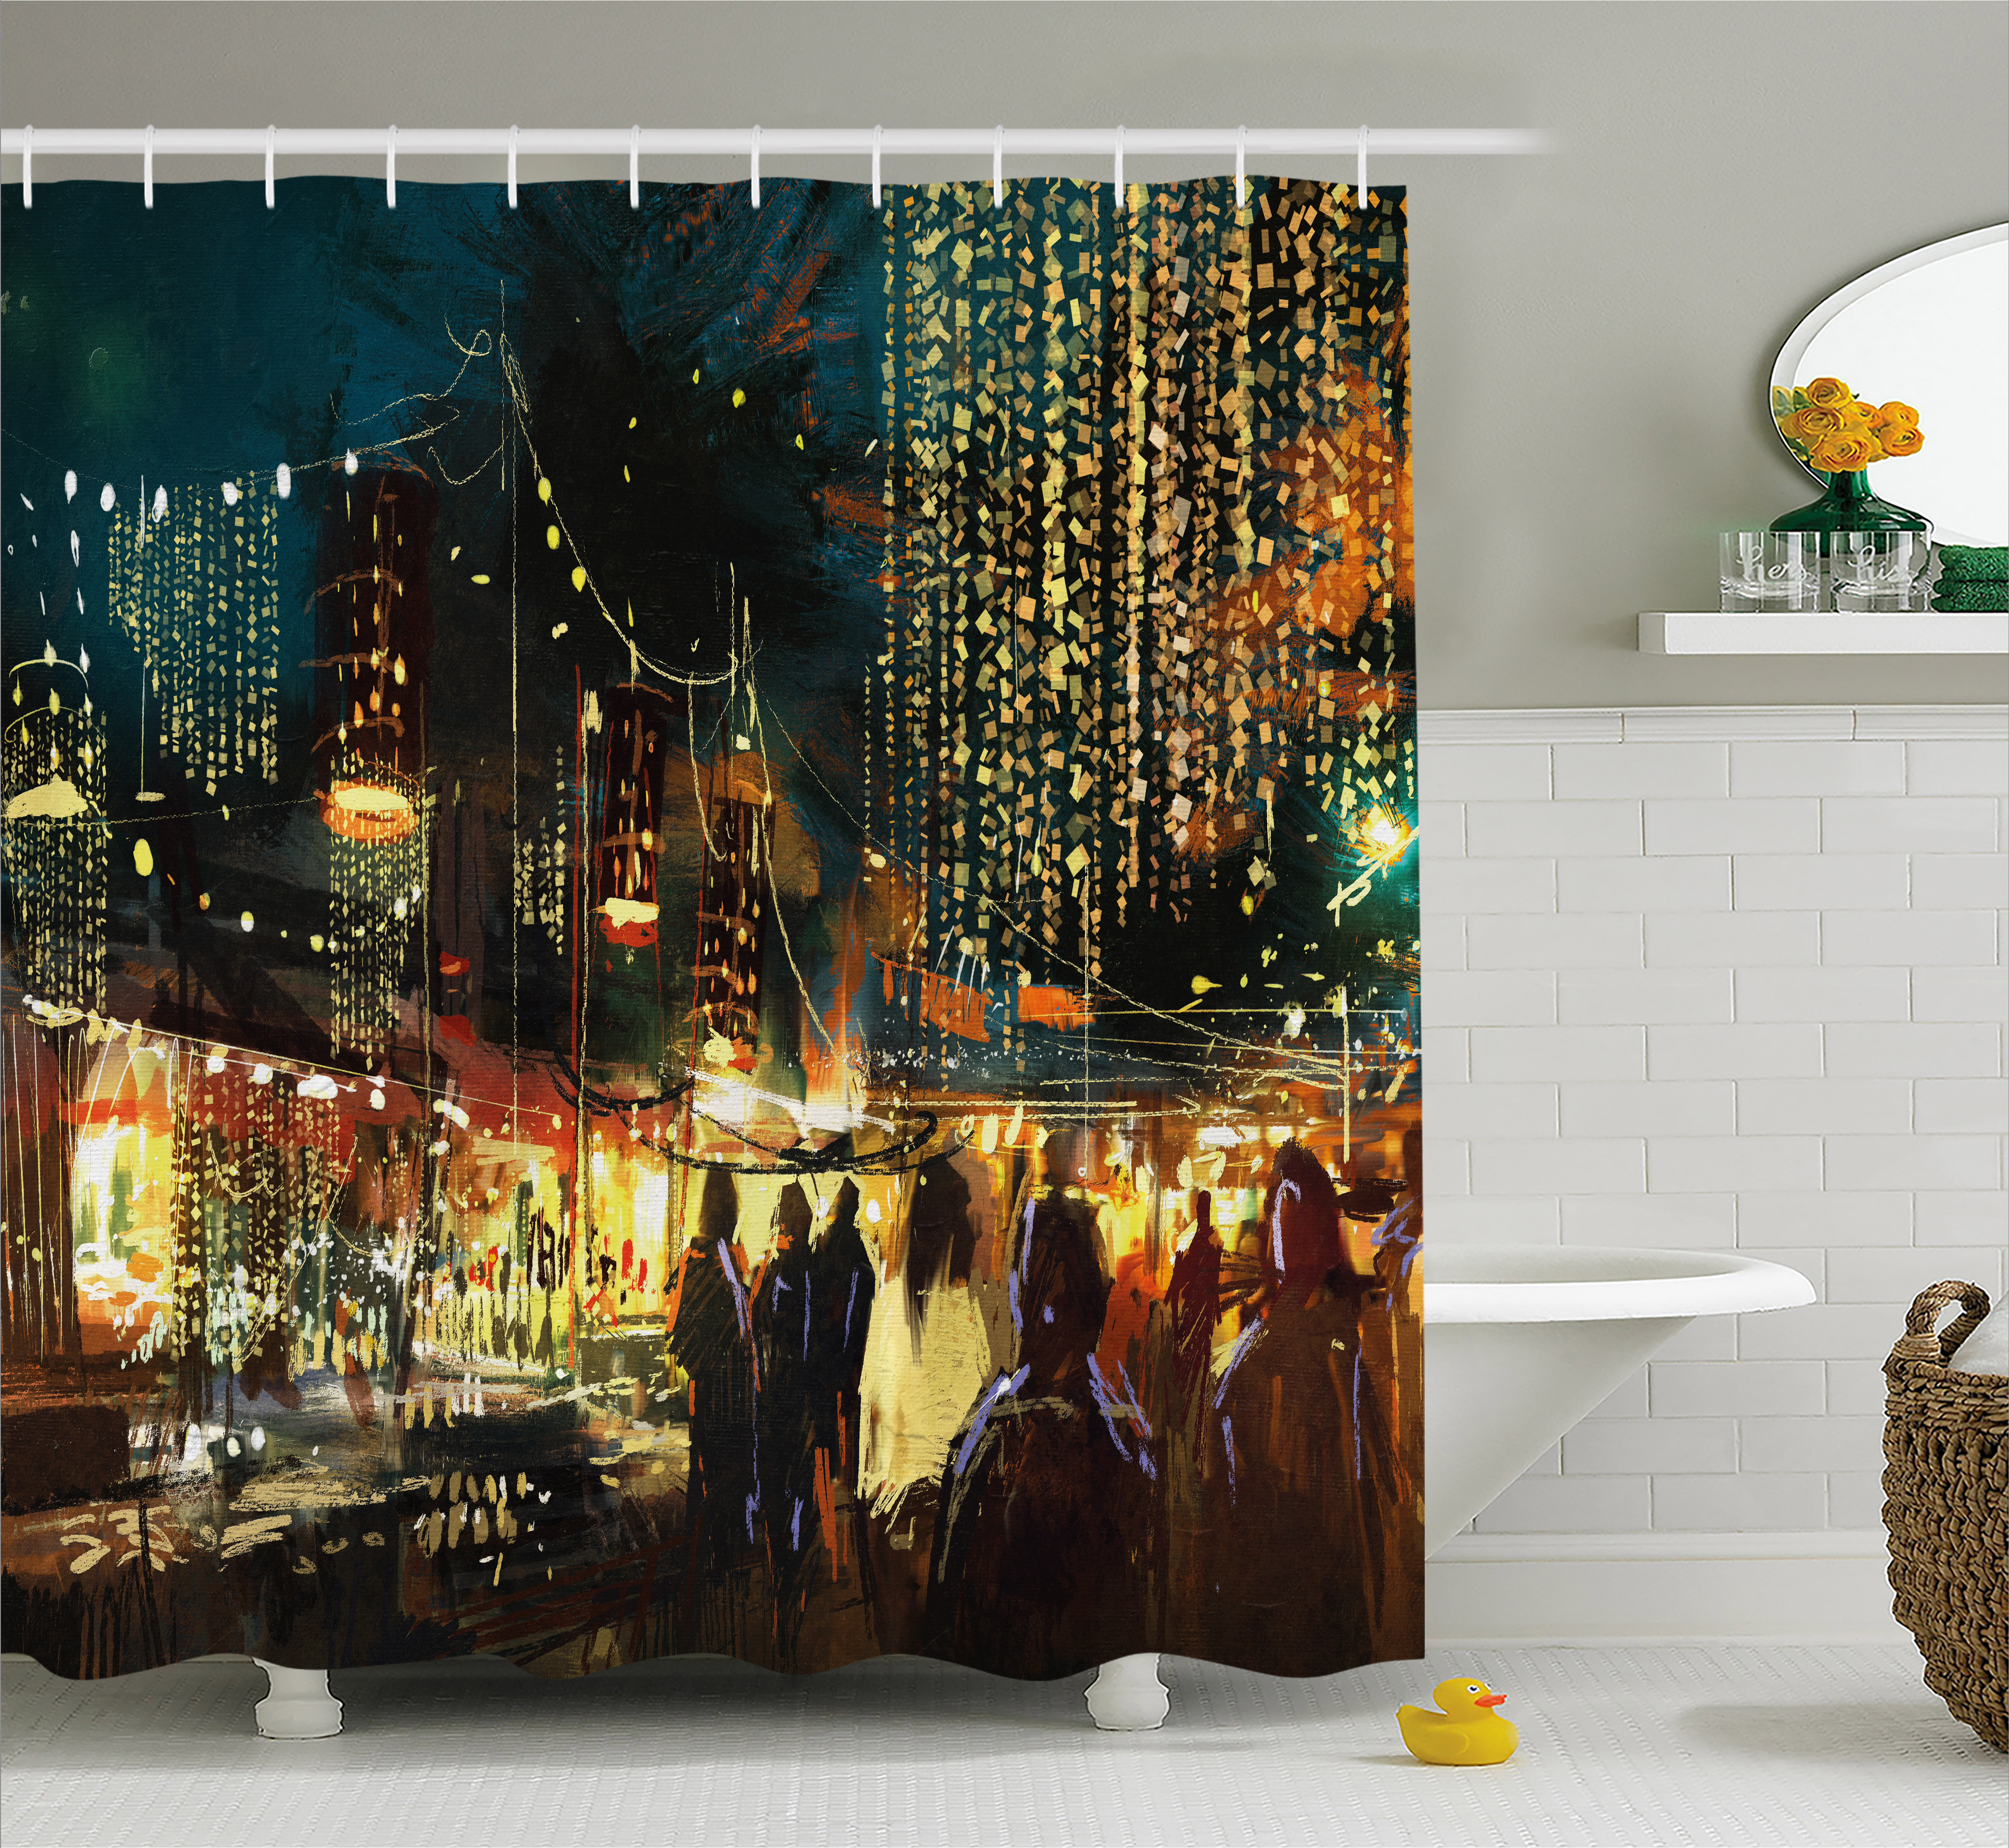 Night Shower Curtain, Painting of Shopping Street City with Colorful Nightlife Abstract Brushstrokes Art, Fabric Bathroom Set with Hooks, 69W X 75L Inches Long, Multicolor, by Ambesonne